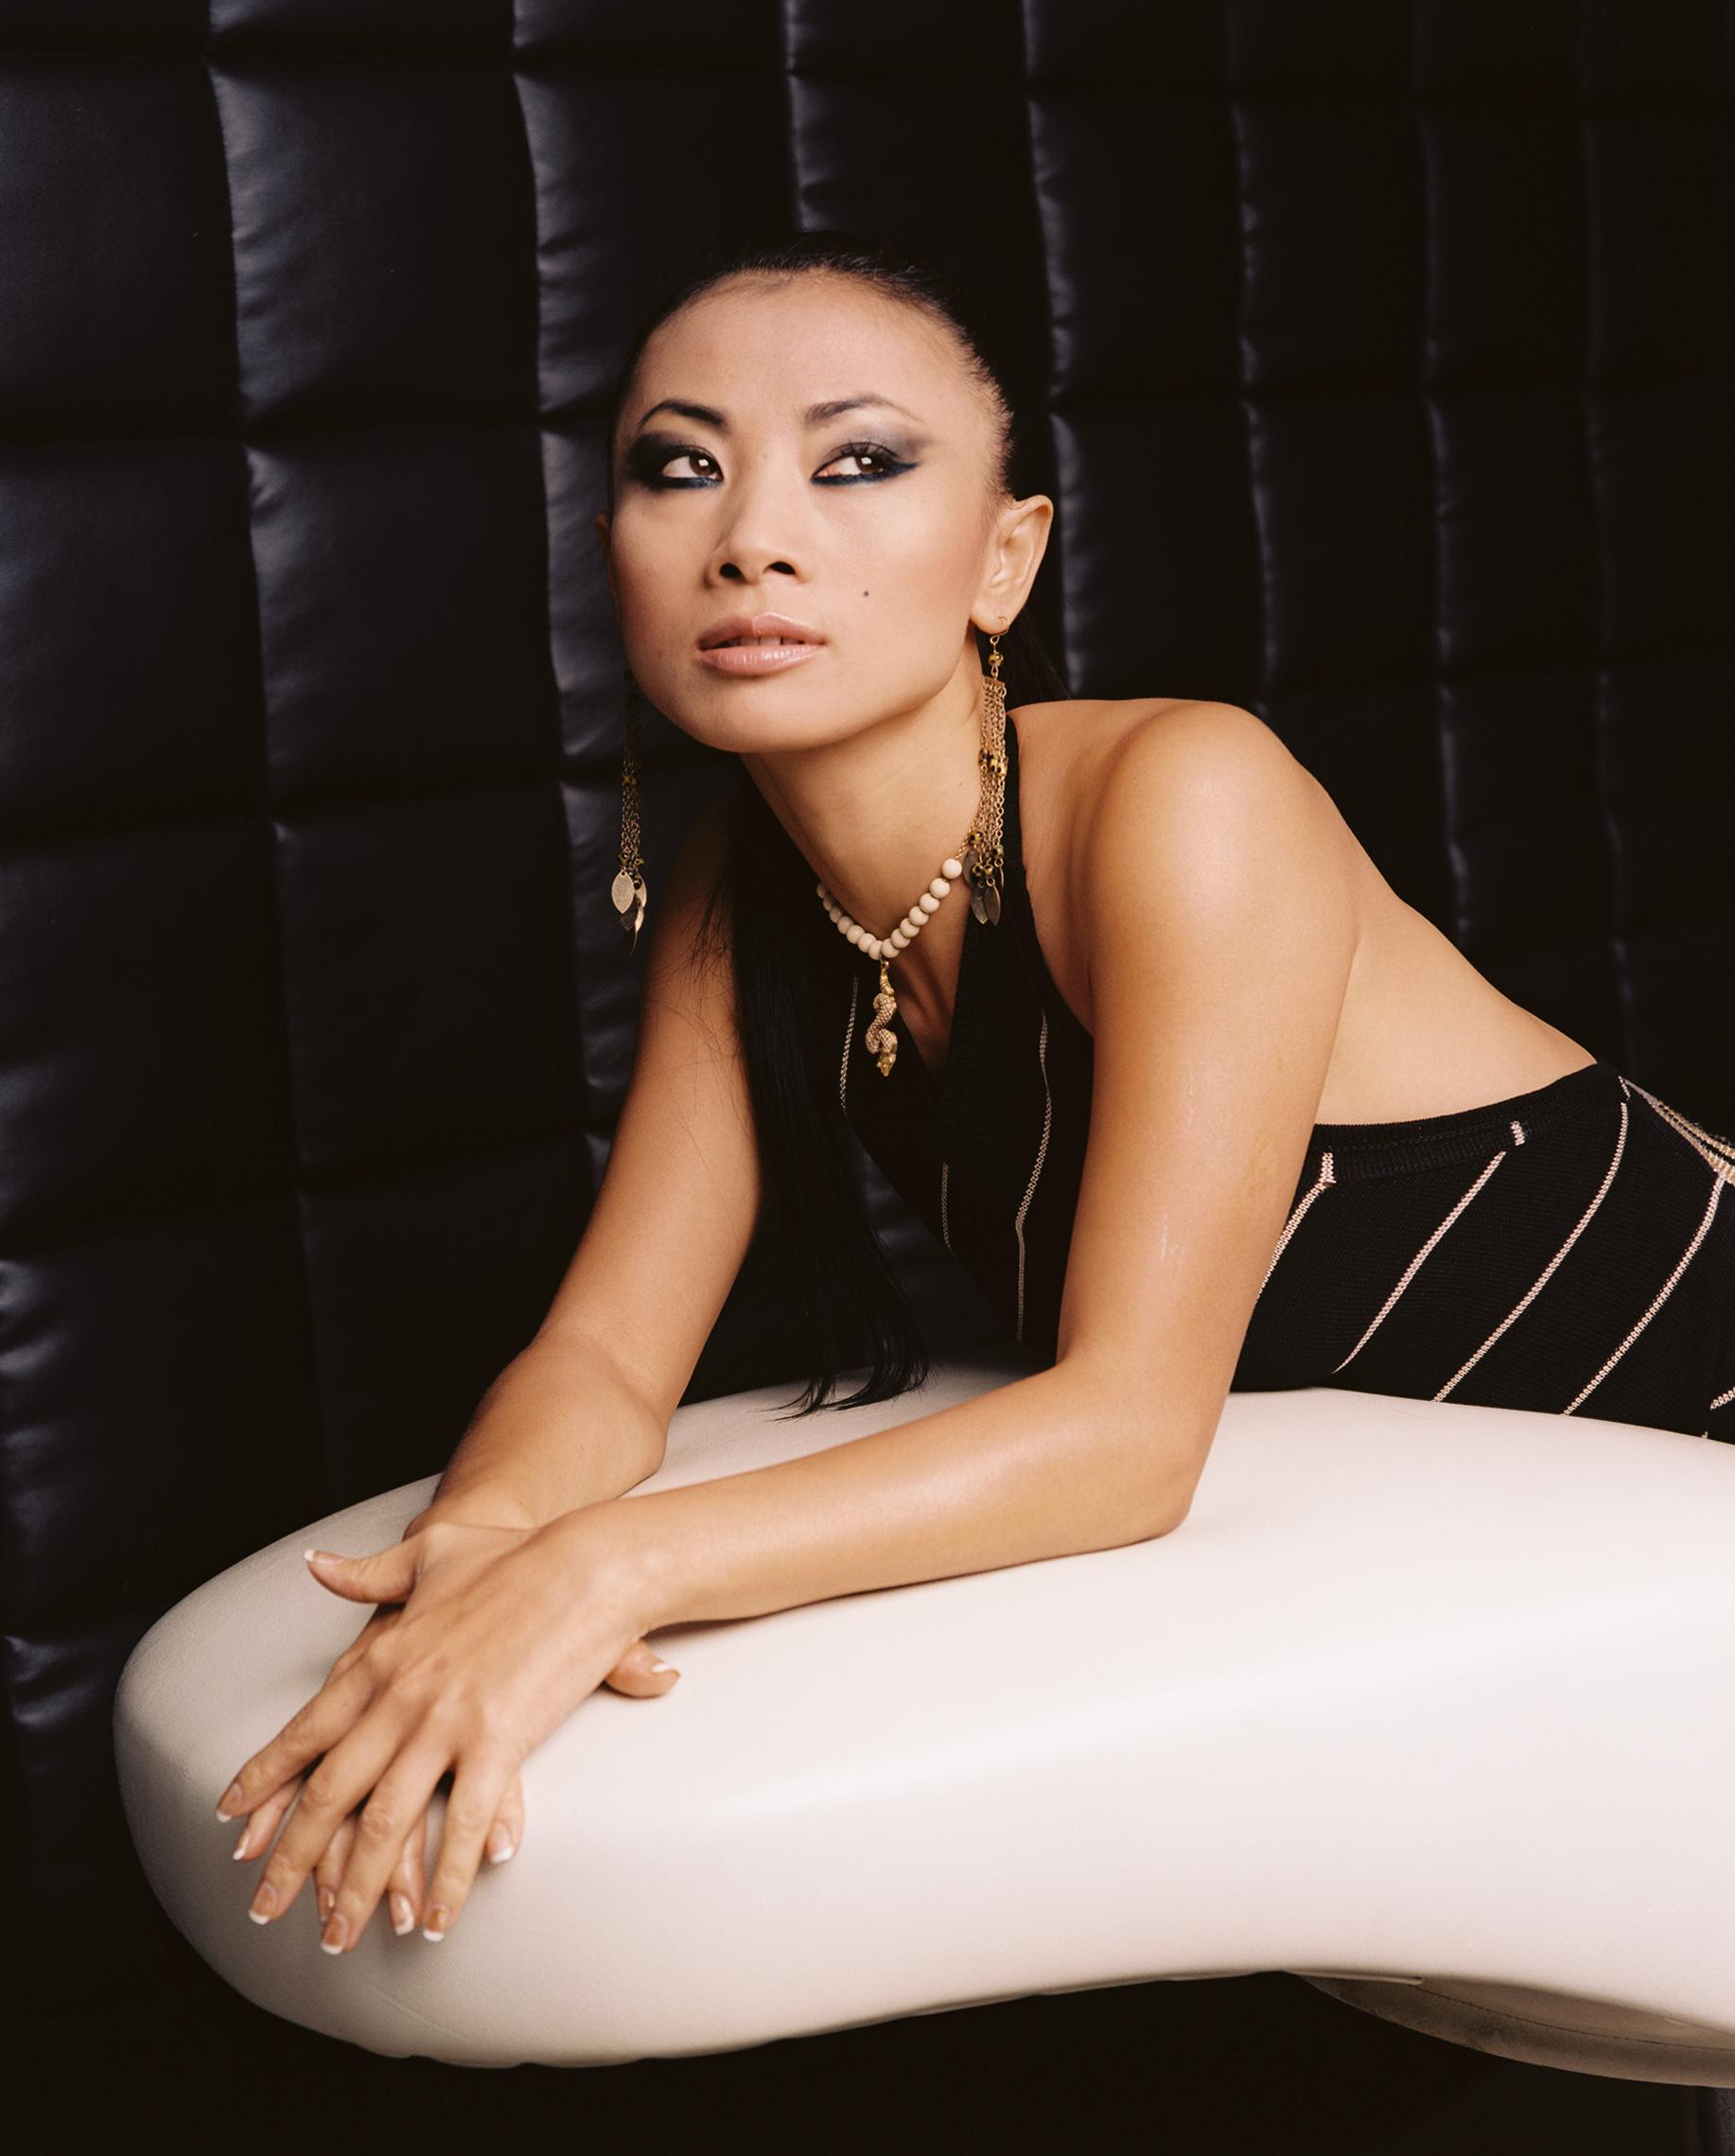 Bai Ling on her belly